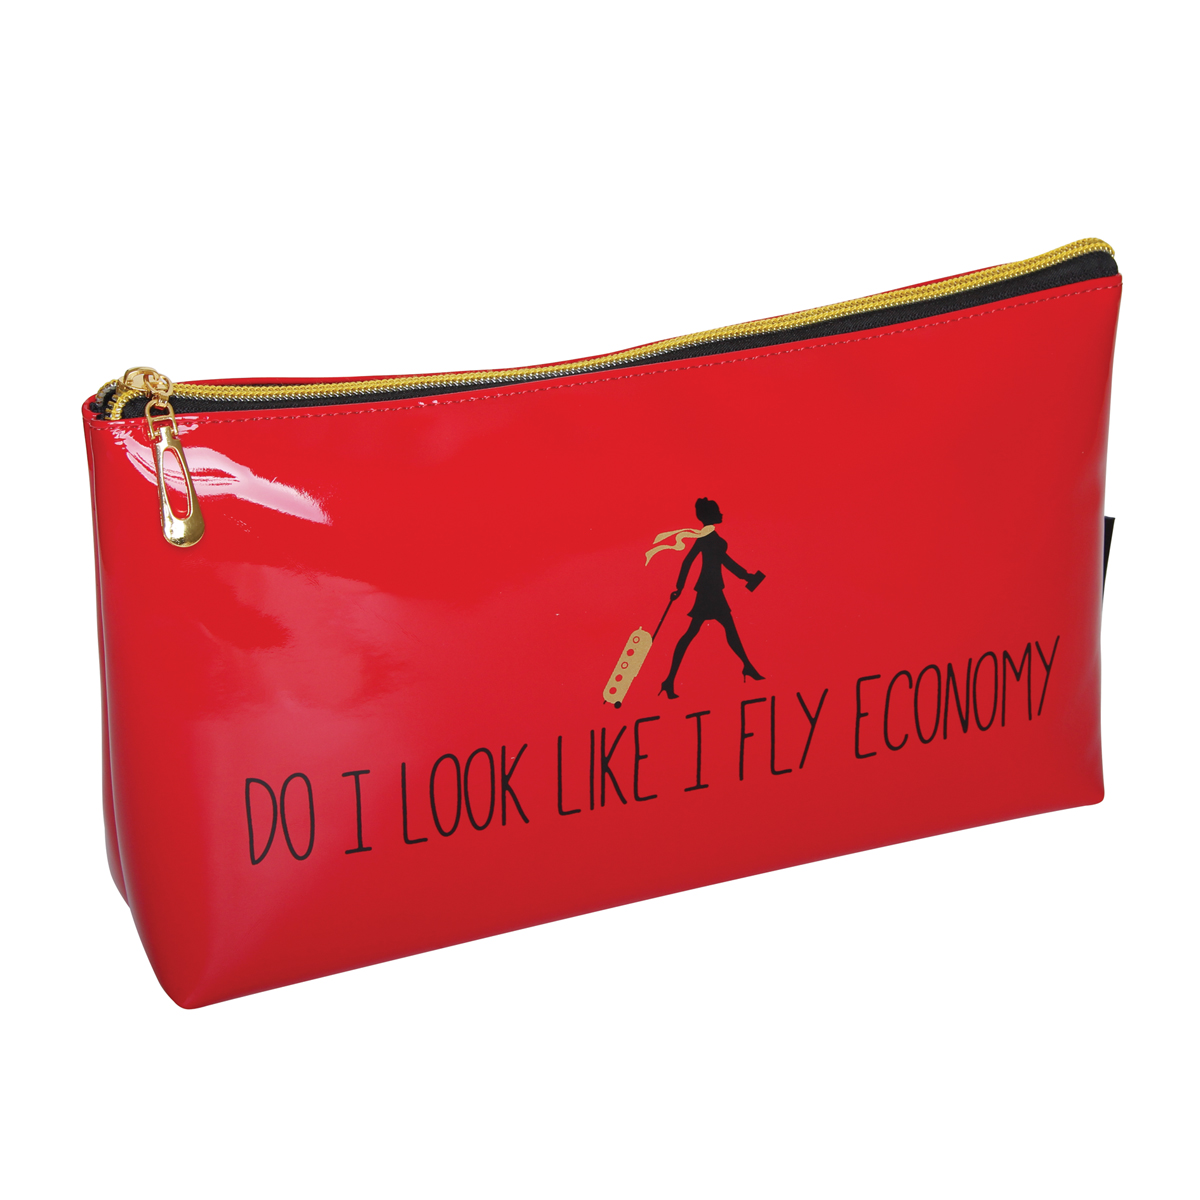 B2076 - 'Do I Look Like I Fly Economy' Cosmetic/Toiletry Bags - B2076